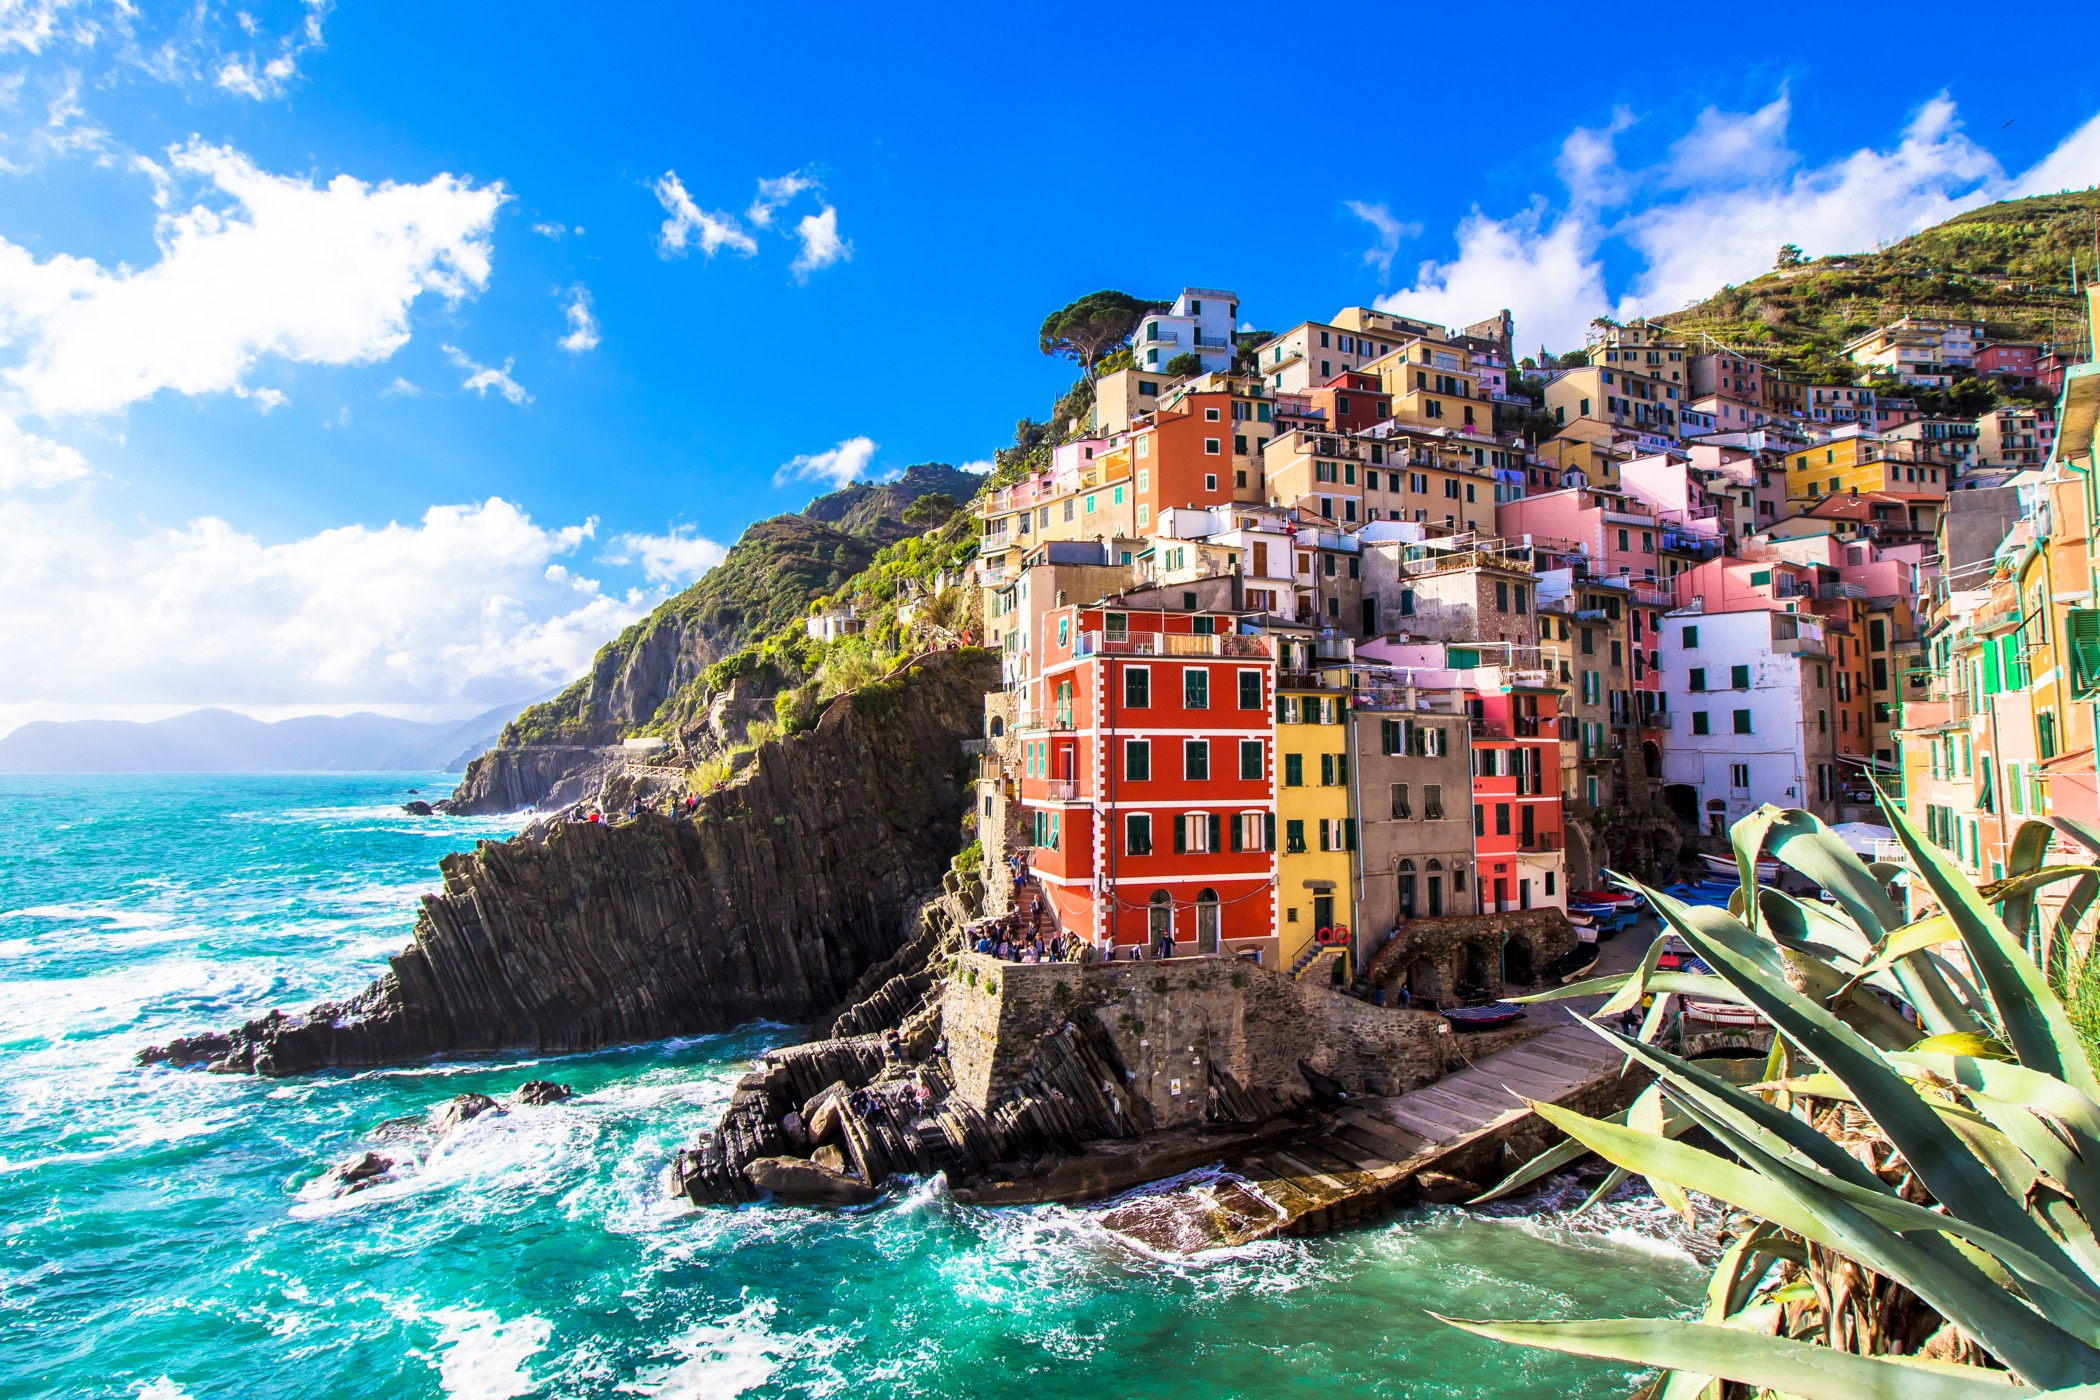 Enjoy the best possible views of the Cinque Terre